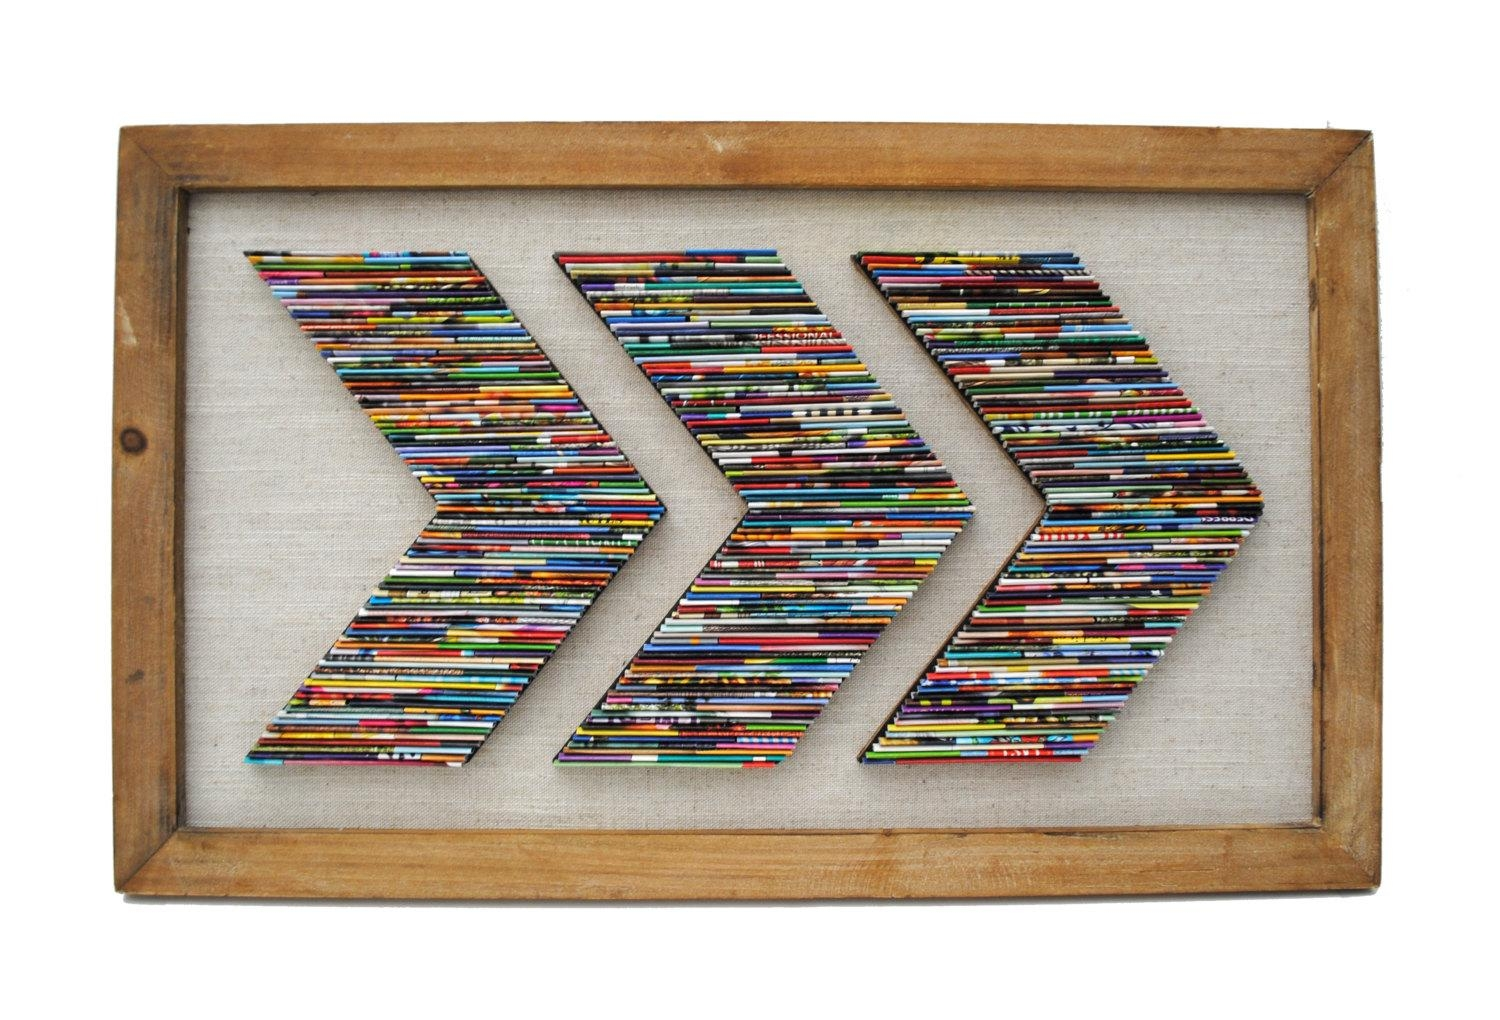 Chevron Recycled Magazine Wall Art- Made From Recycled Magazines throughout Recycled Wall Art